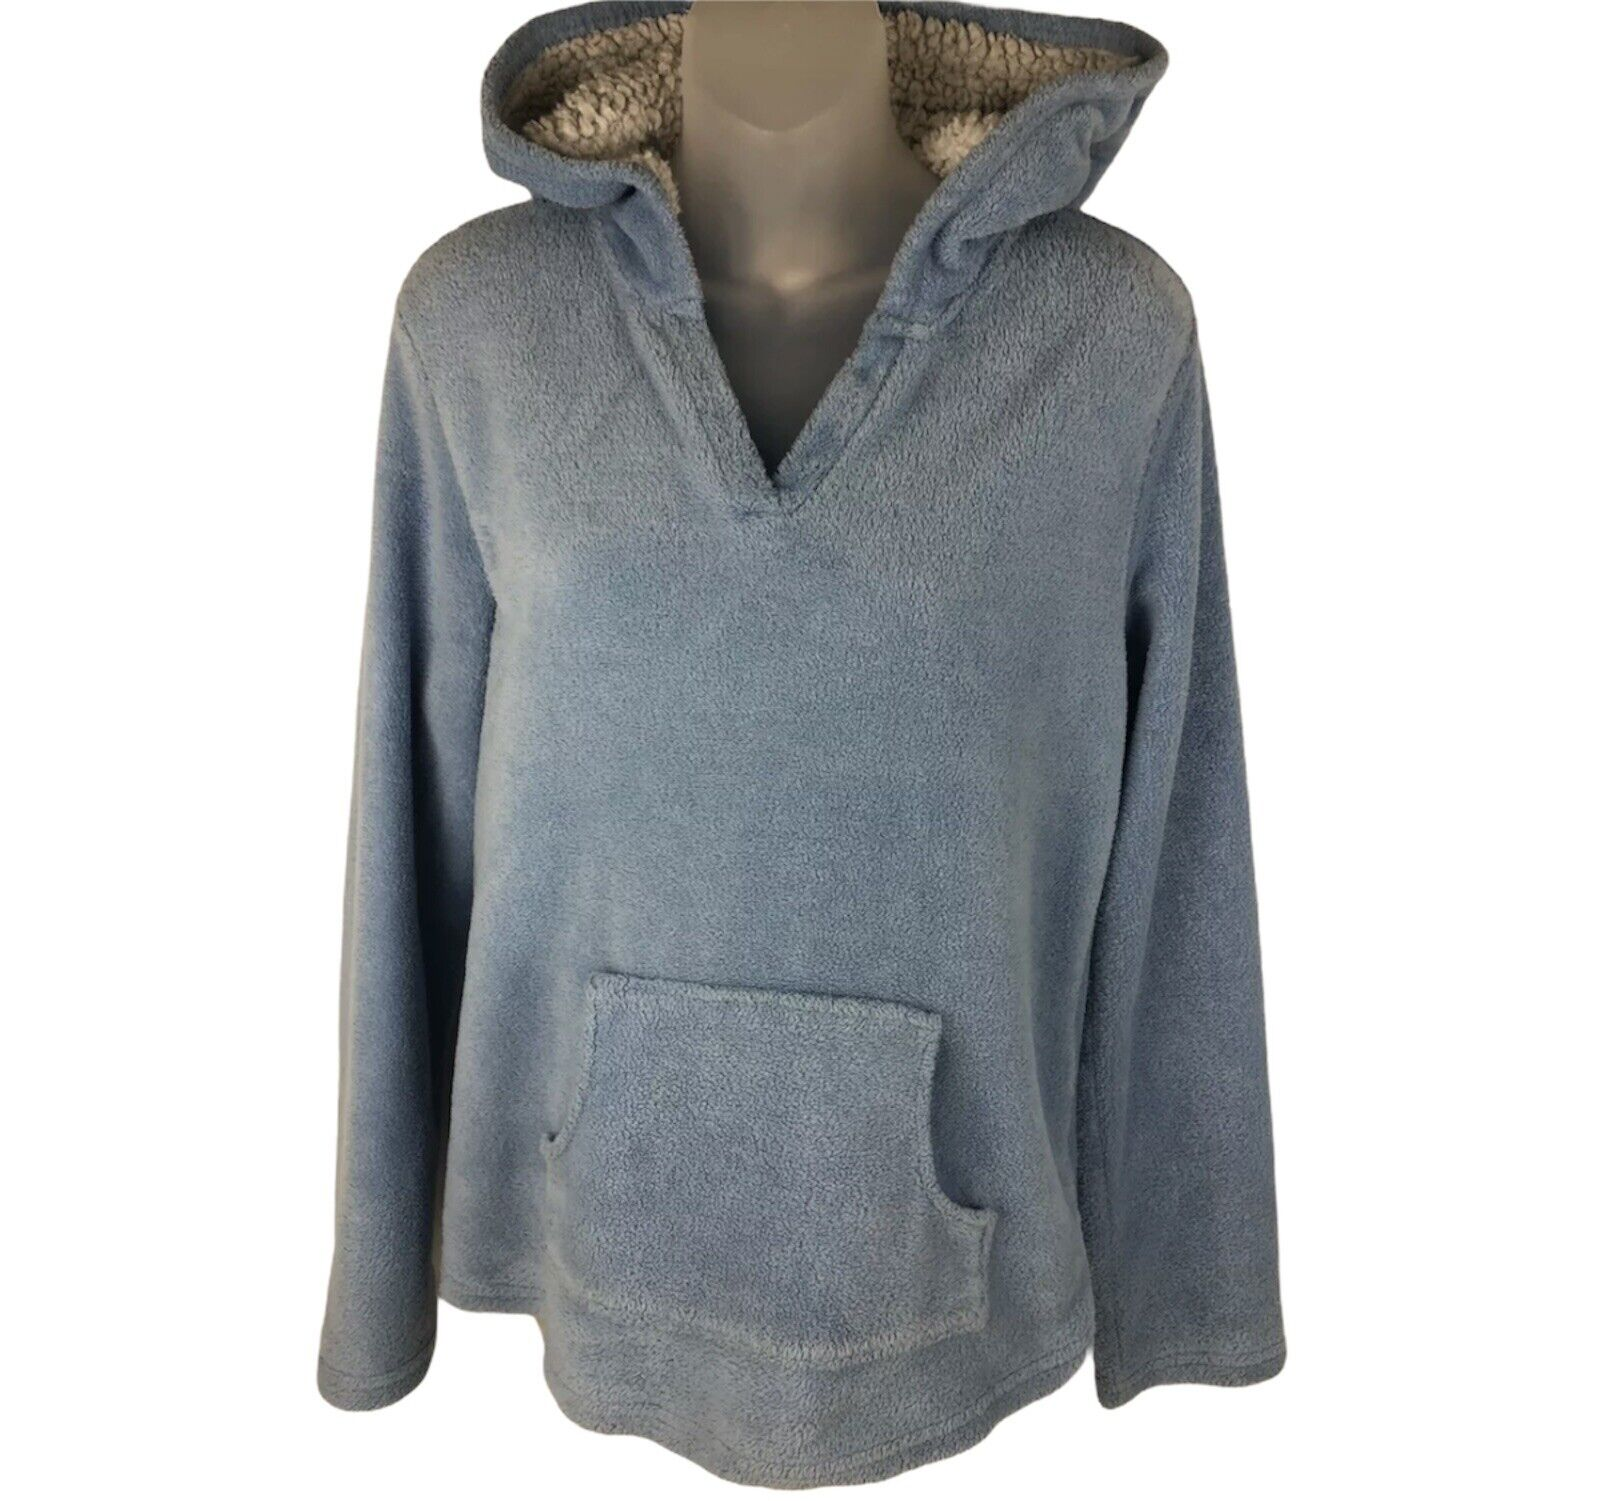 PJ COUTURE Womens Pullover Hoodie Kangaroo Pocket LIGHT BLUE Size L